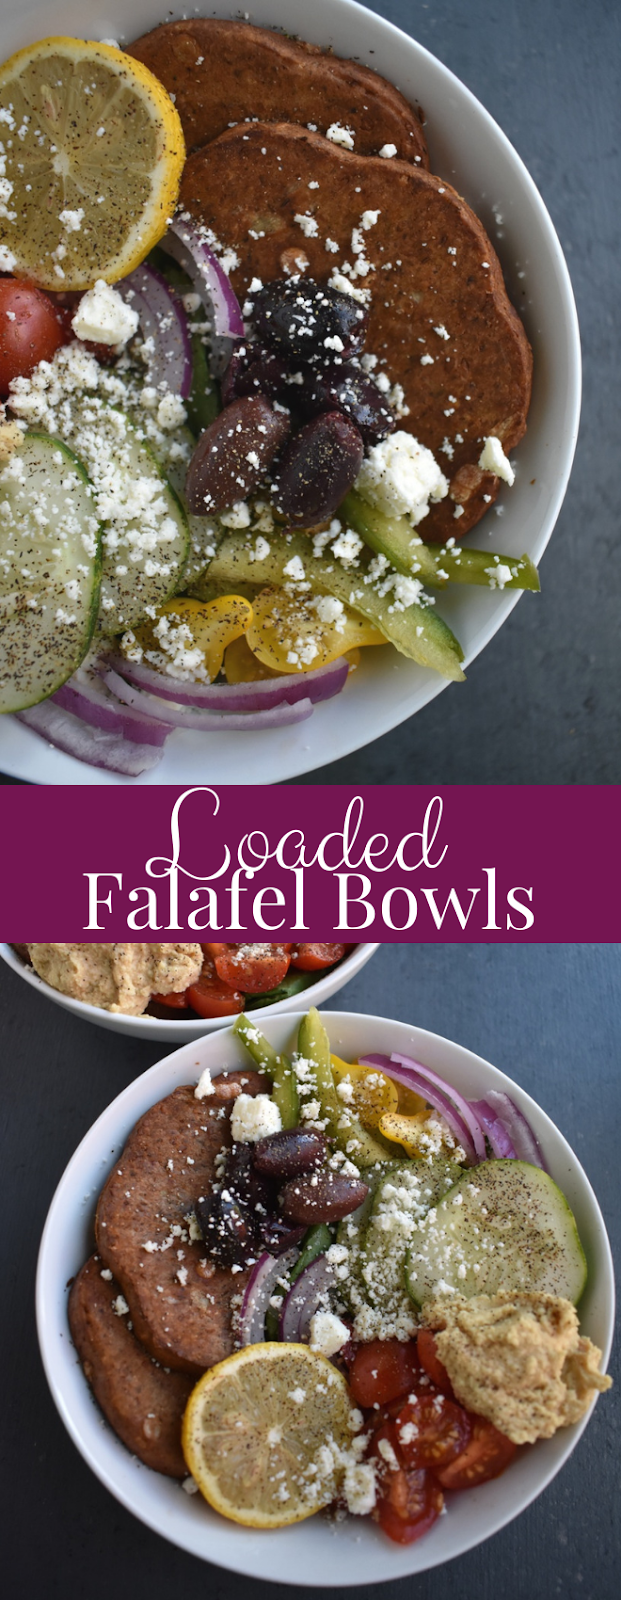 Loaded Falafel Bowls take 10 minutes to make and are full of flavorful ingredients including falafel burgers, tomato, cucumber, kalamata olives, feta cheese, bell peppers, hummus, lemon and red onion! www.nutritionistreviews.com